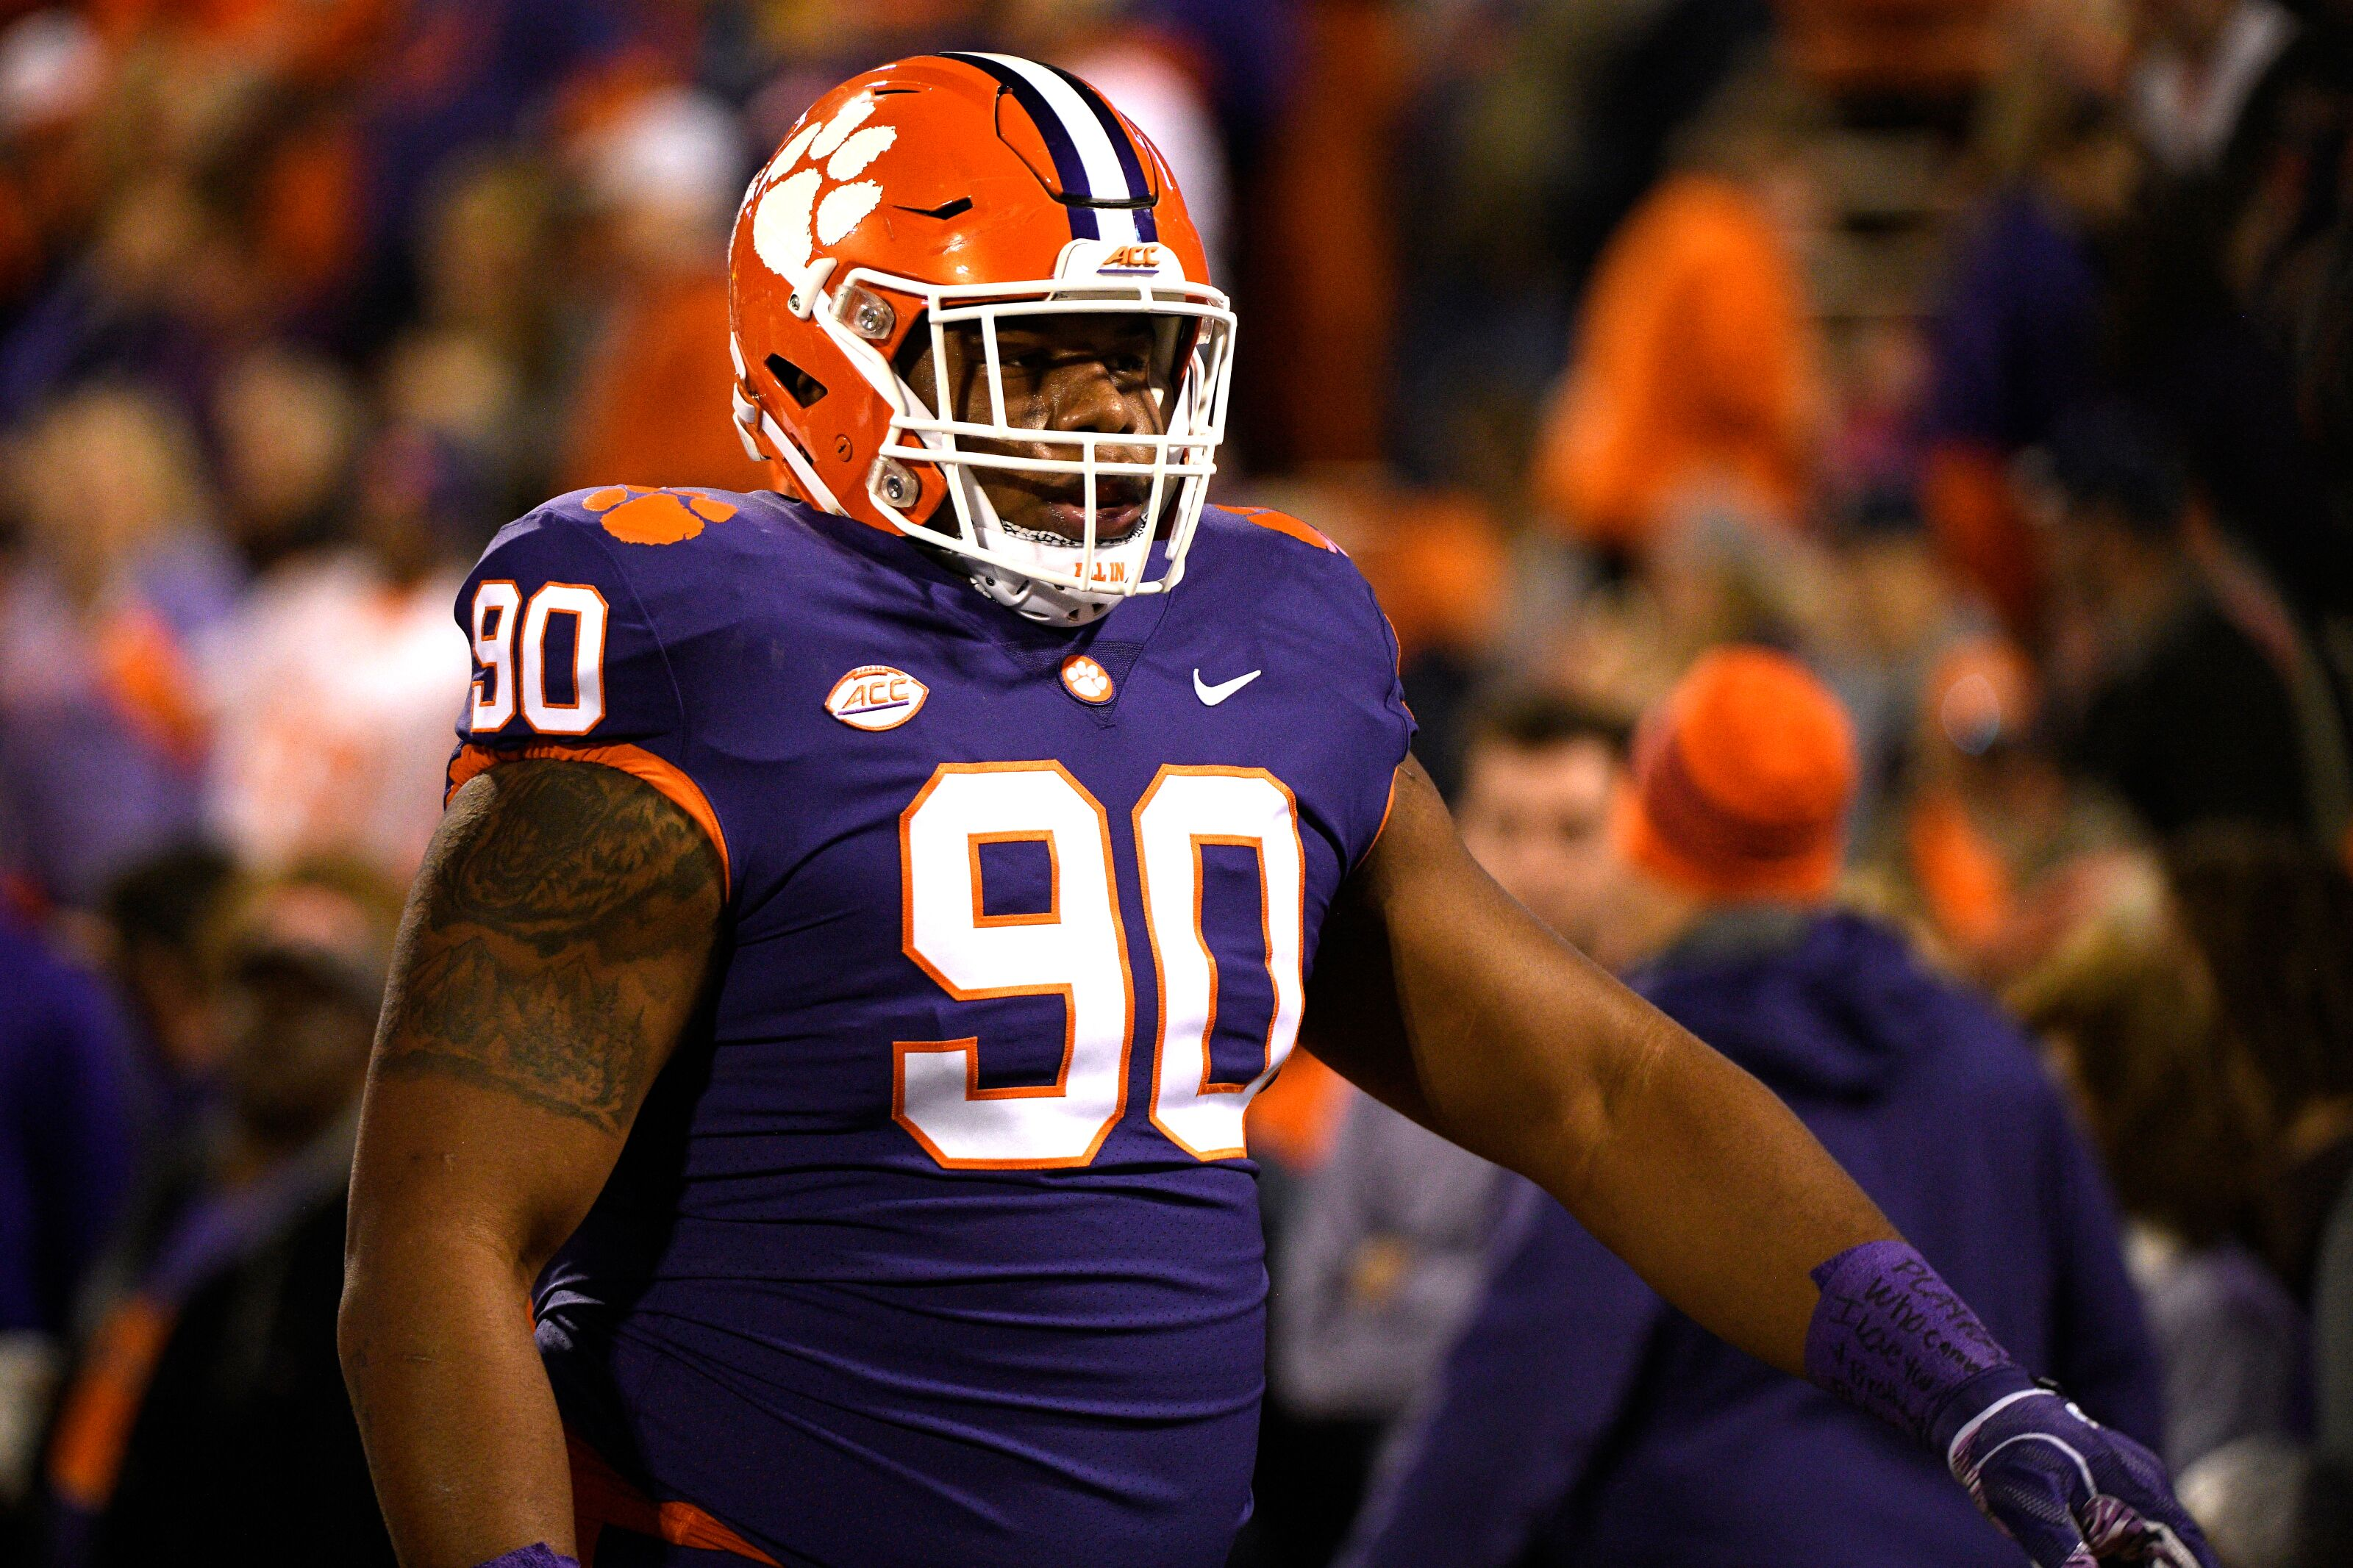 Can Clemson overcome loss of Dexter Lawrence vs. Alabama?